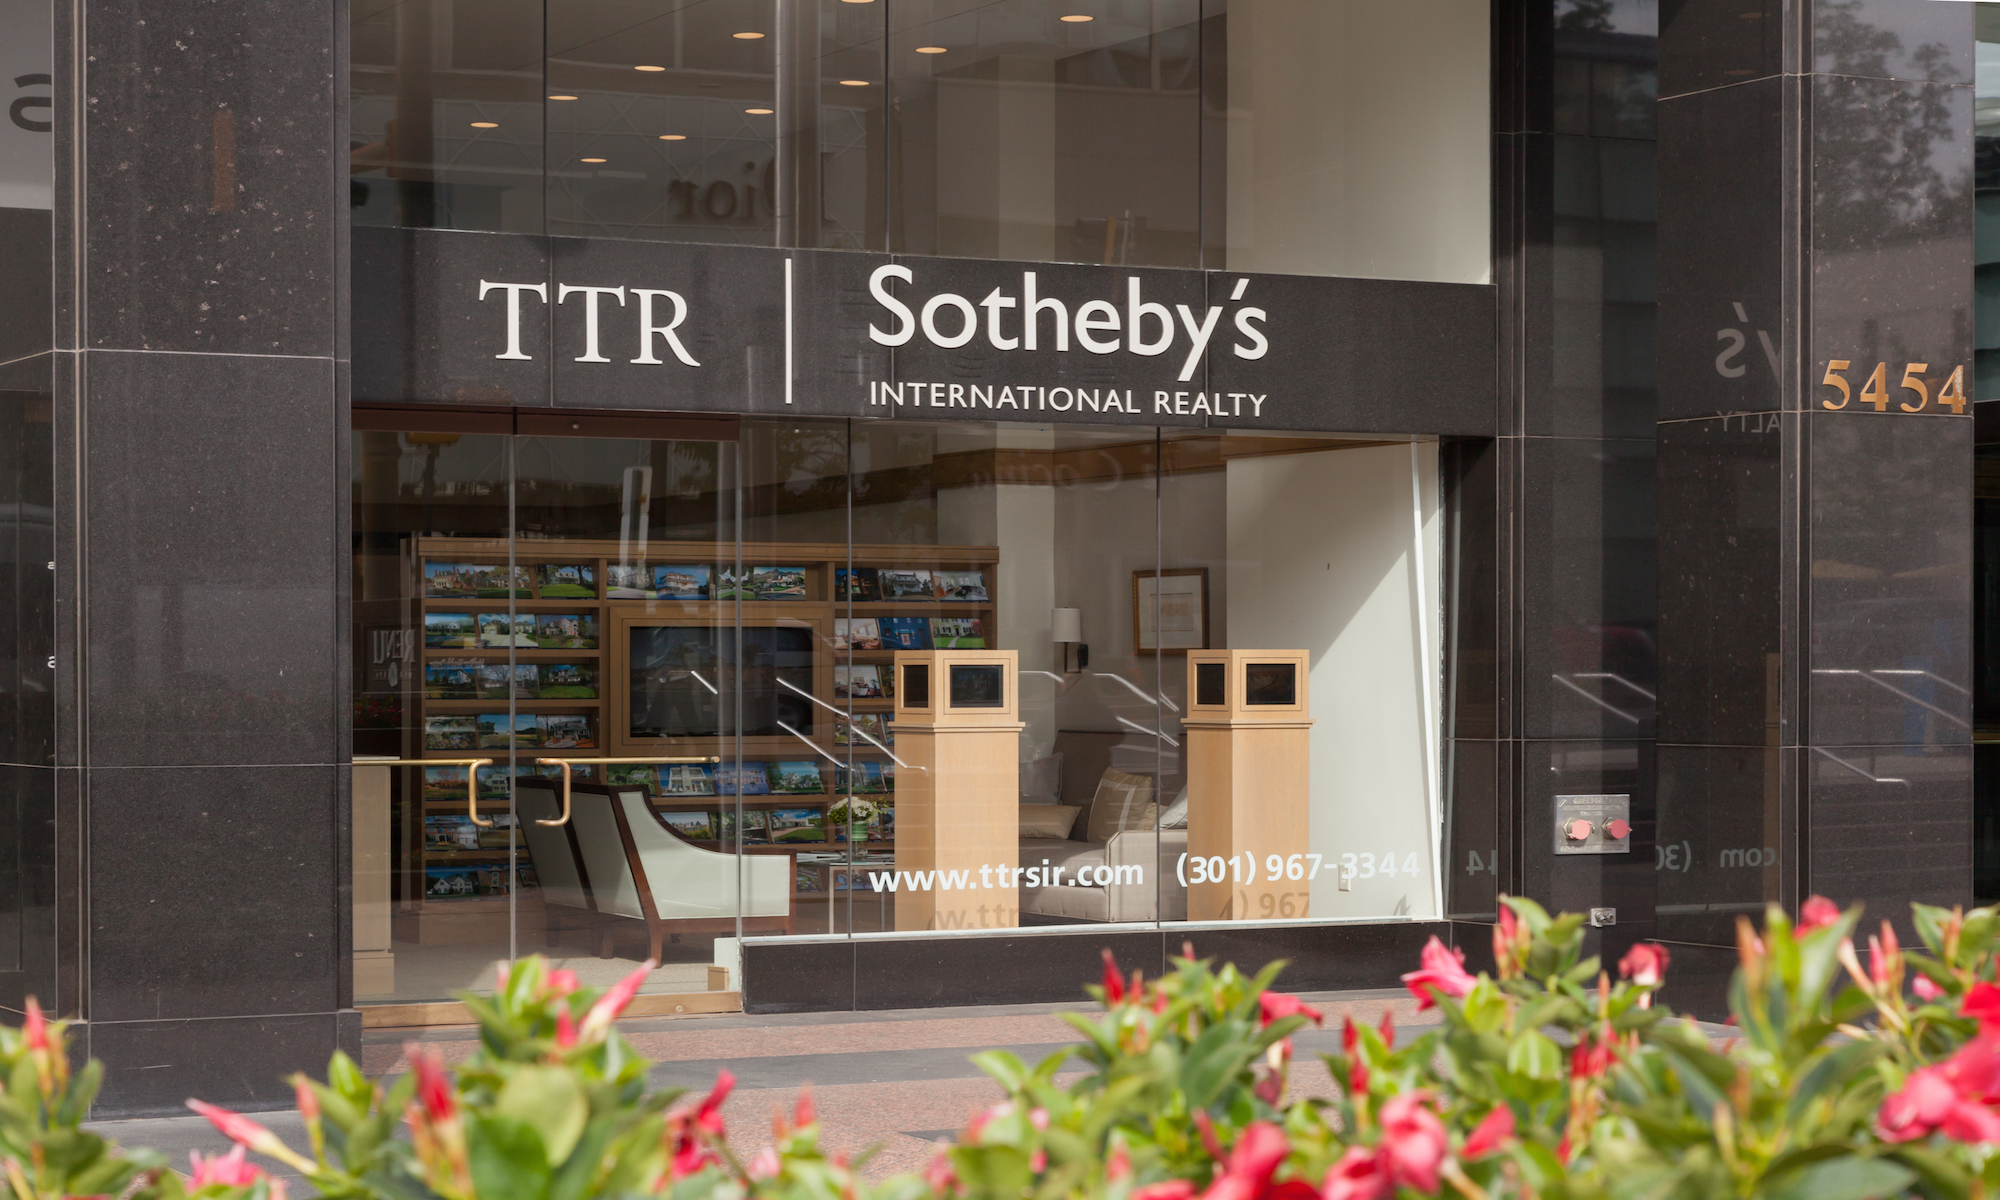 Office TTR Sotheby's International Realty Photo